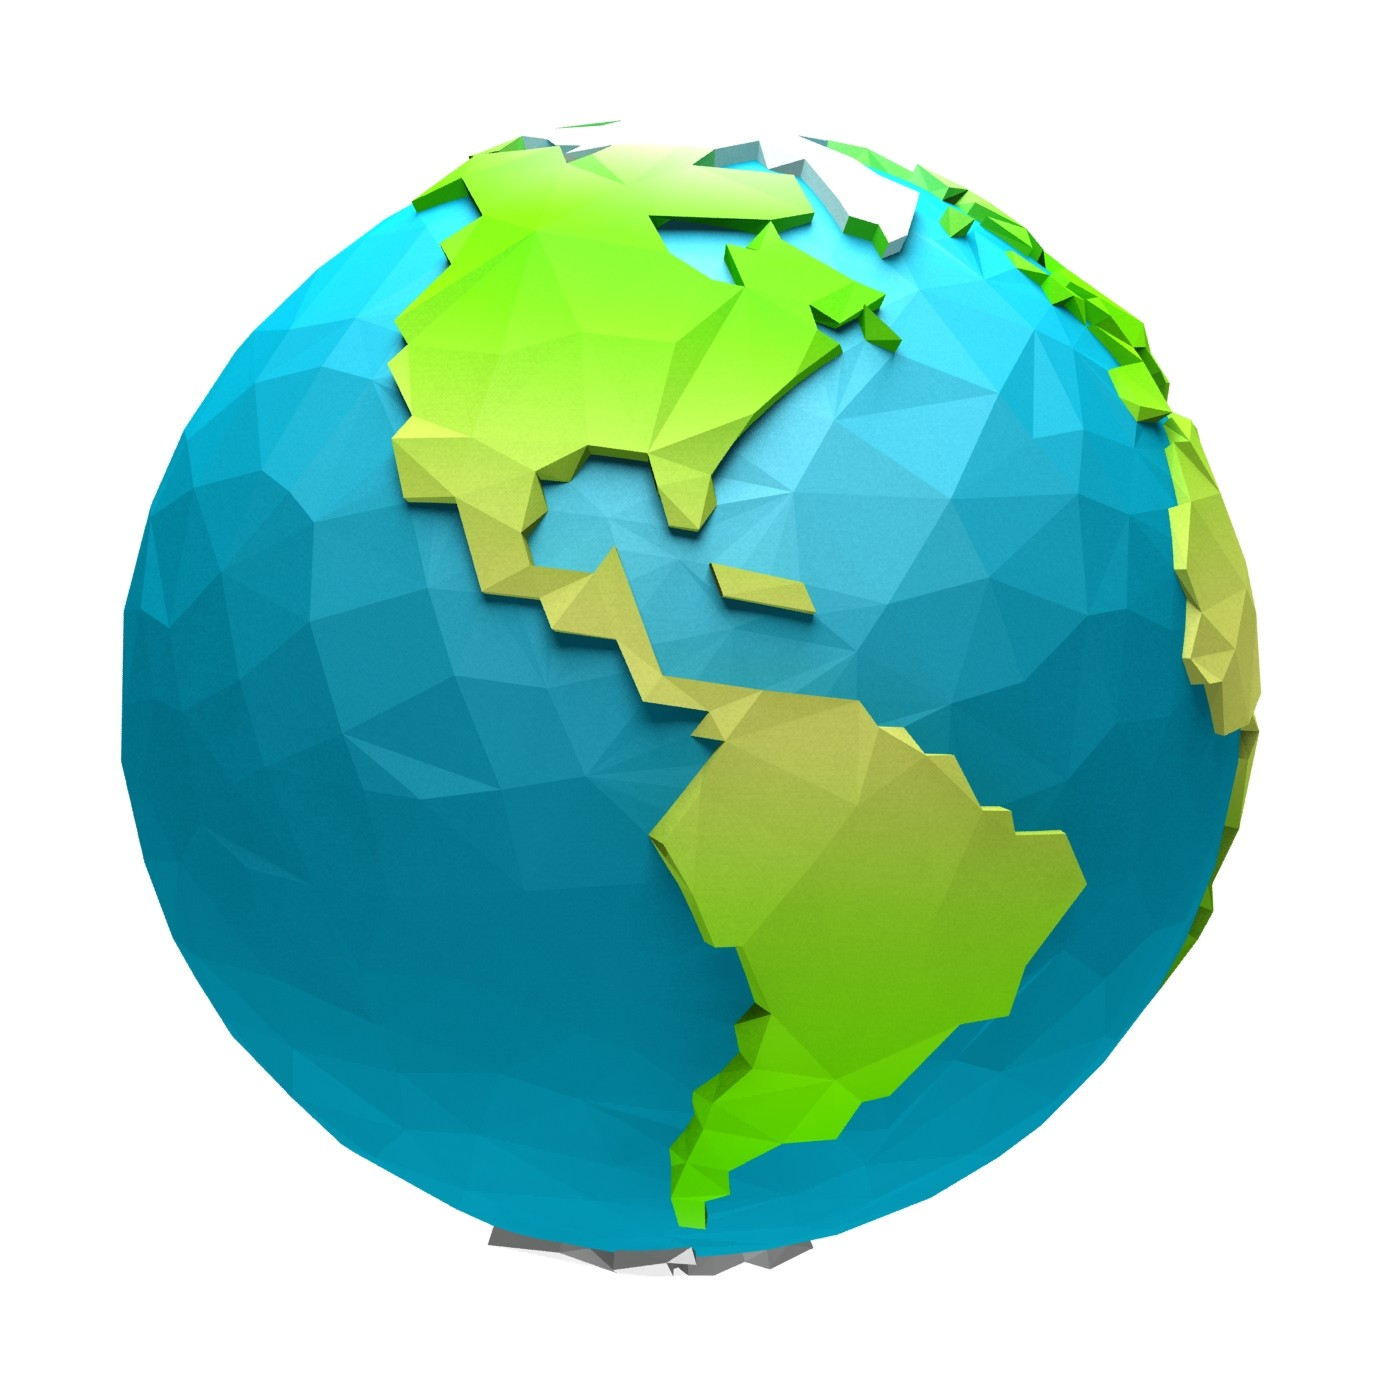 Cartoon Picture Of The World Globe | Free download best Cartoon ...